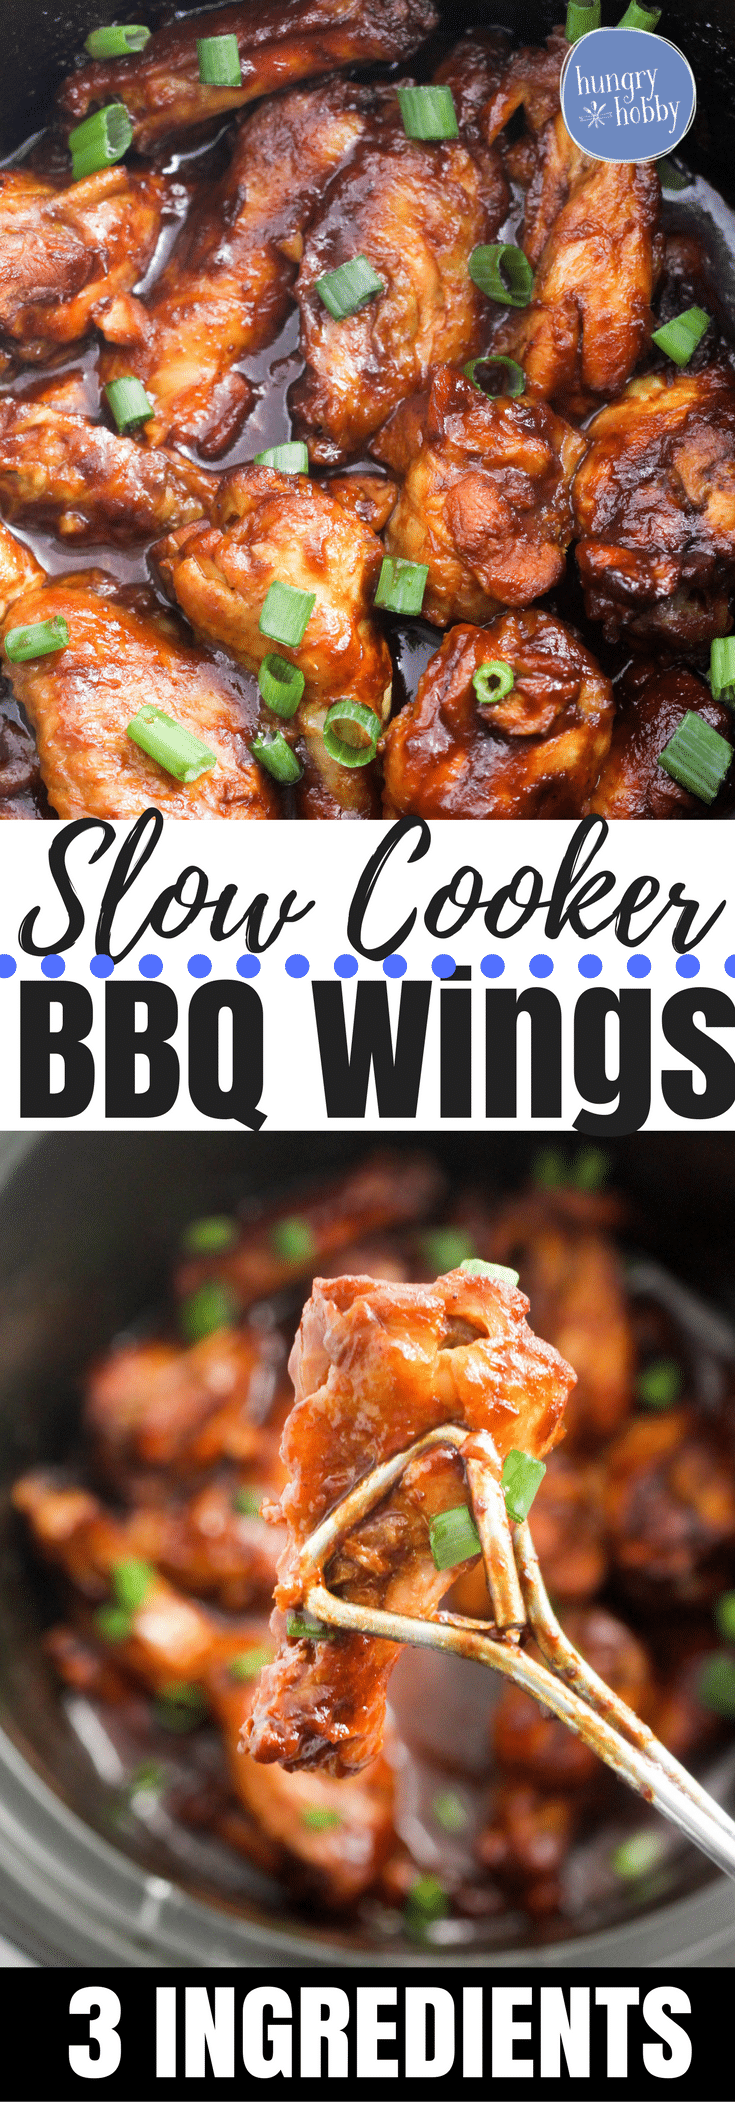 Slow Cooker Barbecue Wings will change the way you look at wings and your slow cooker, an easy, delicious, gluten-free crowd pleaser!